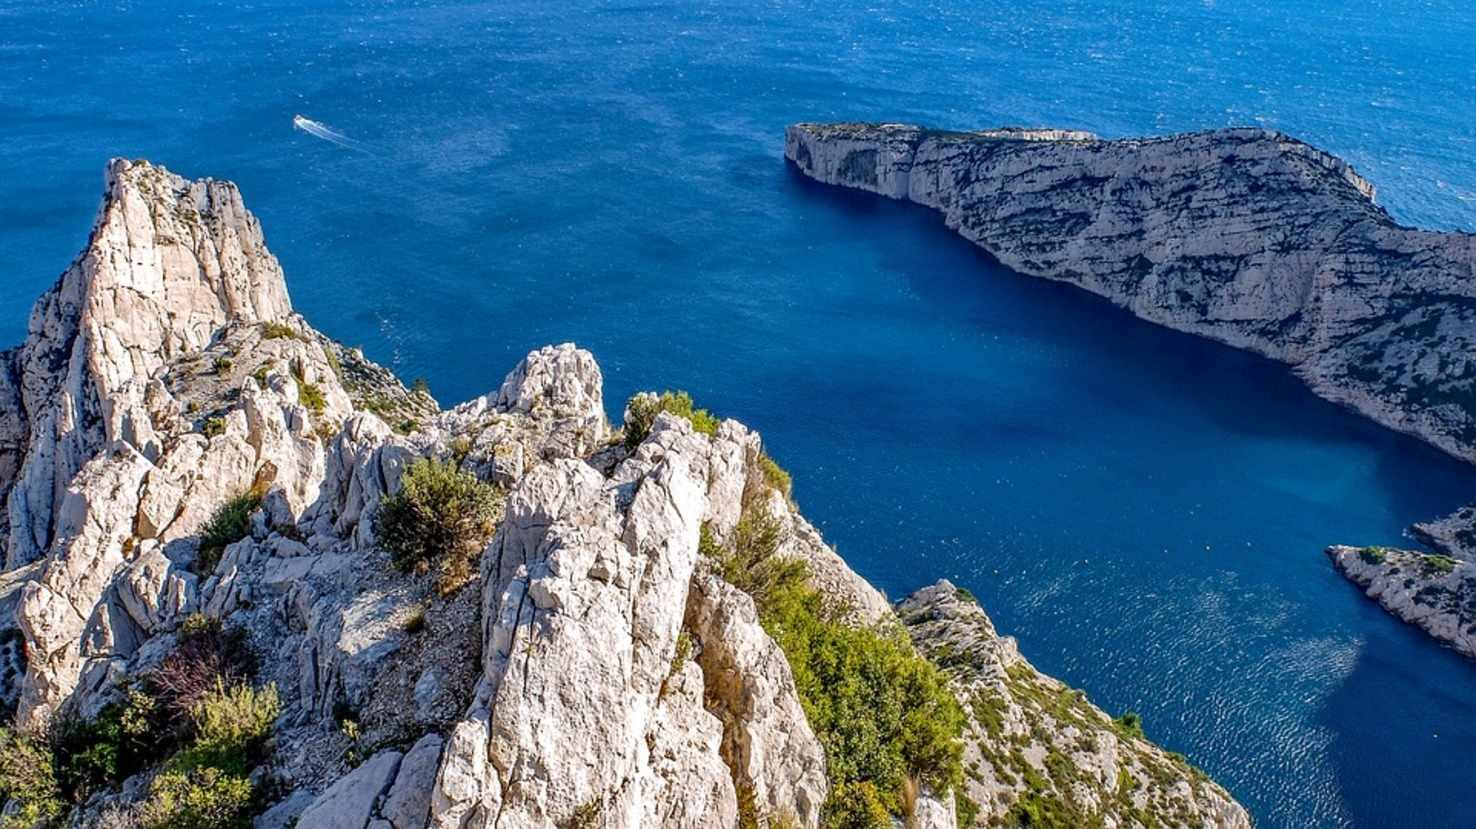 Large calanque frnce